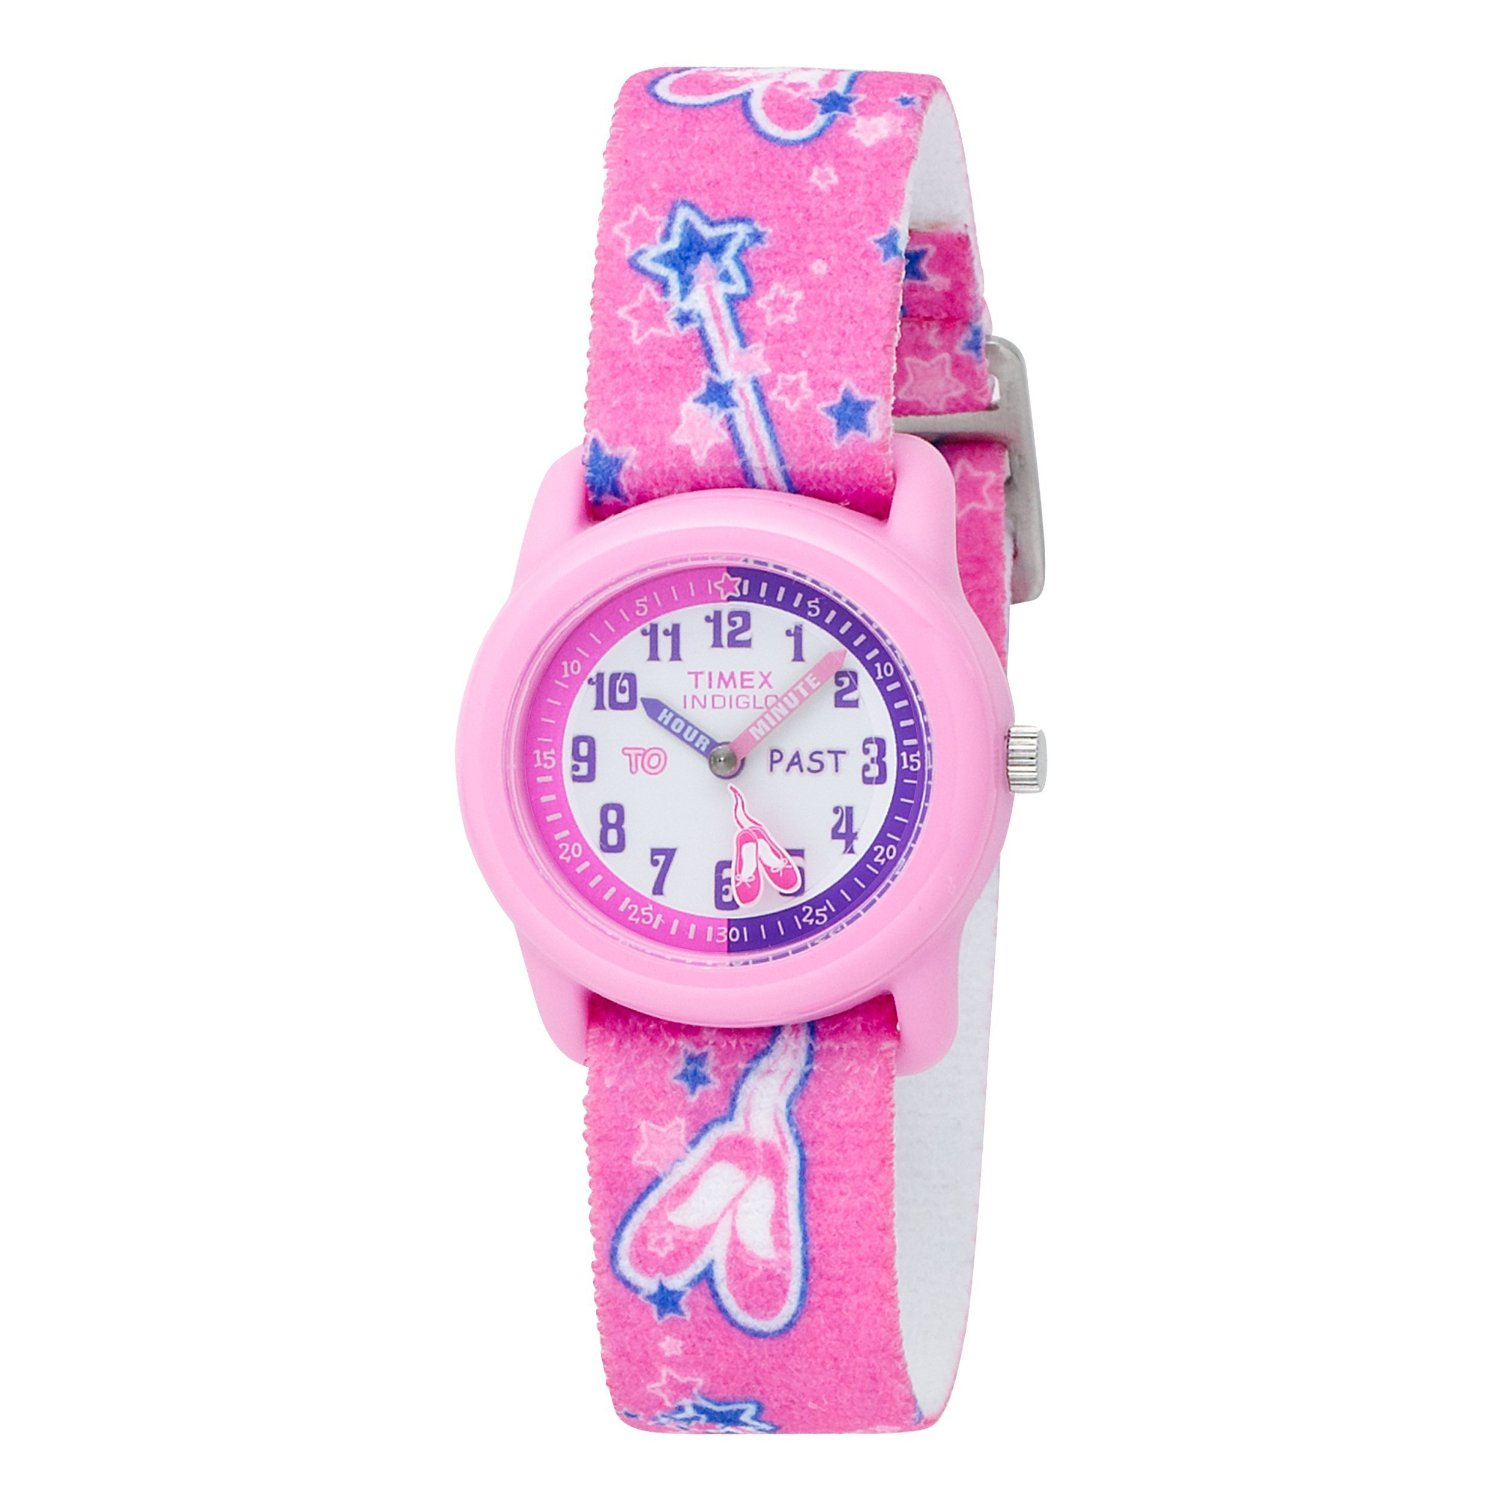 Wrist watches for girls dulha dulhan for Watches for girls